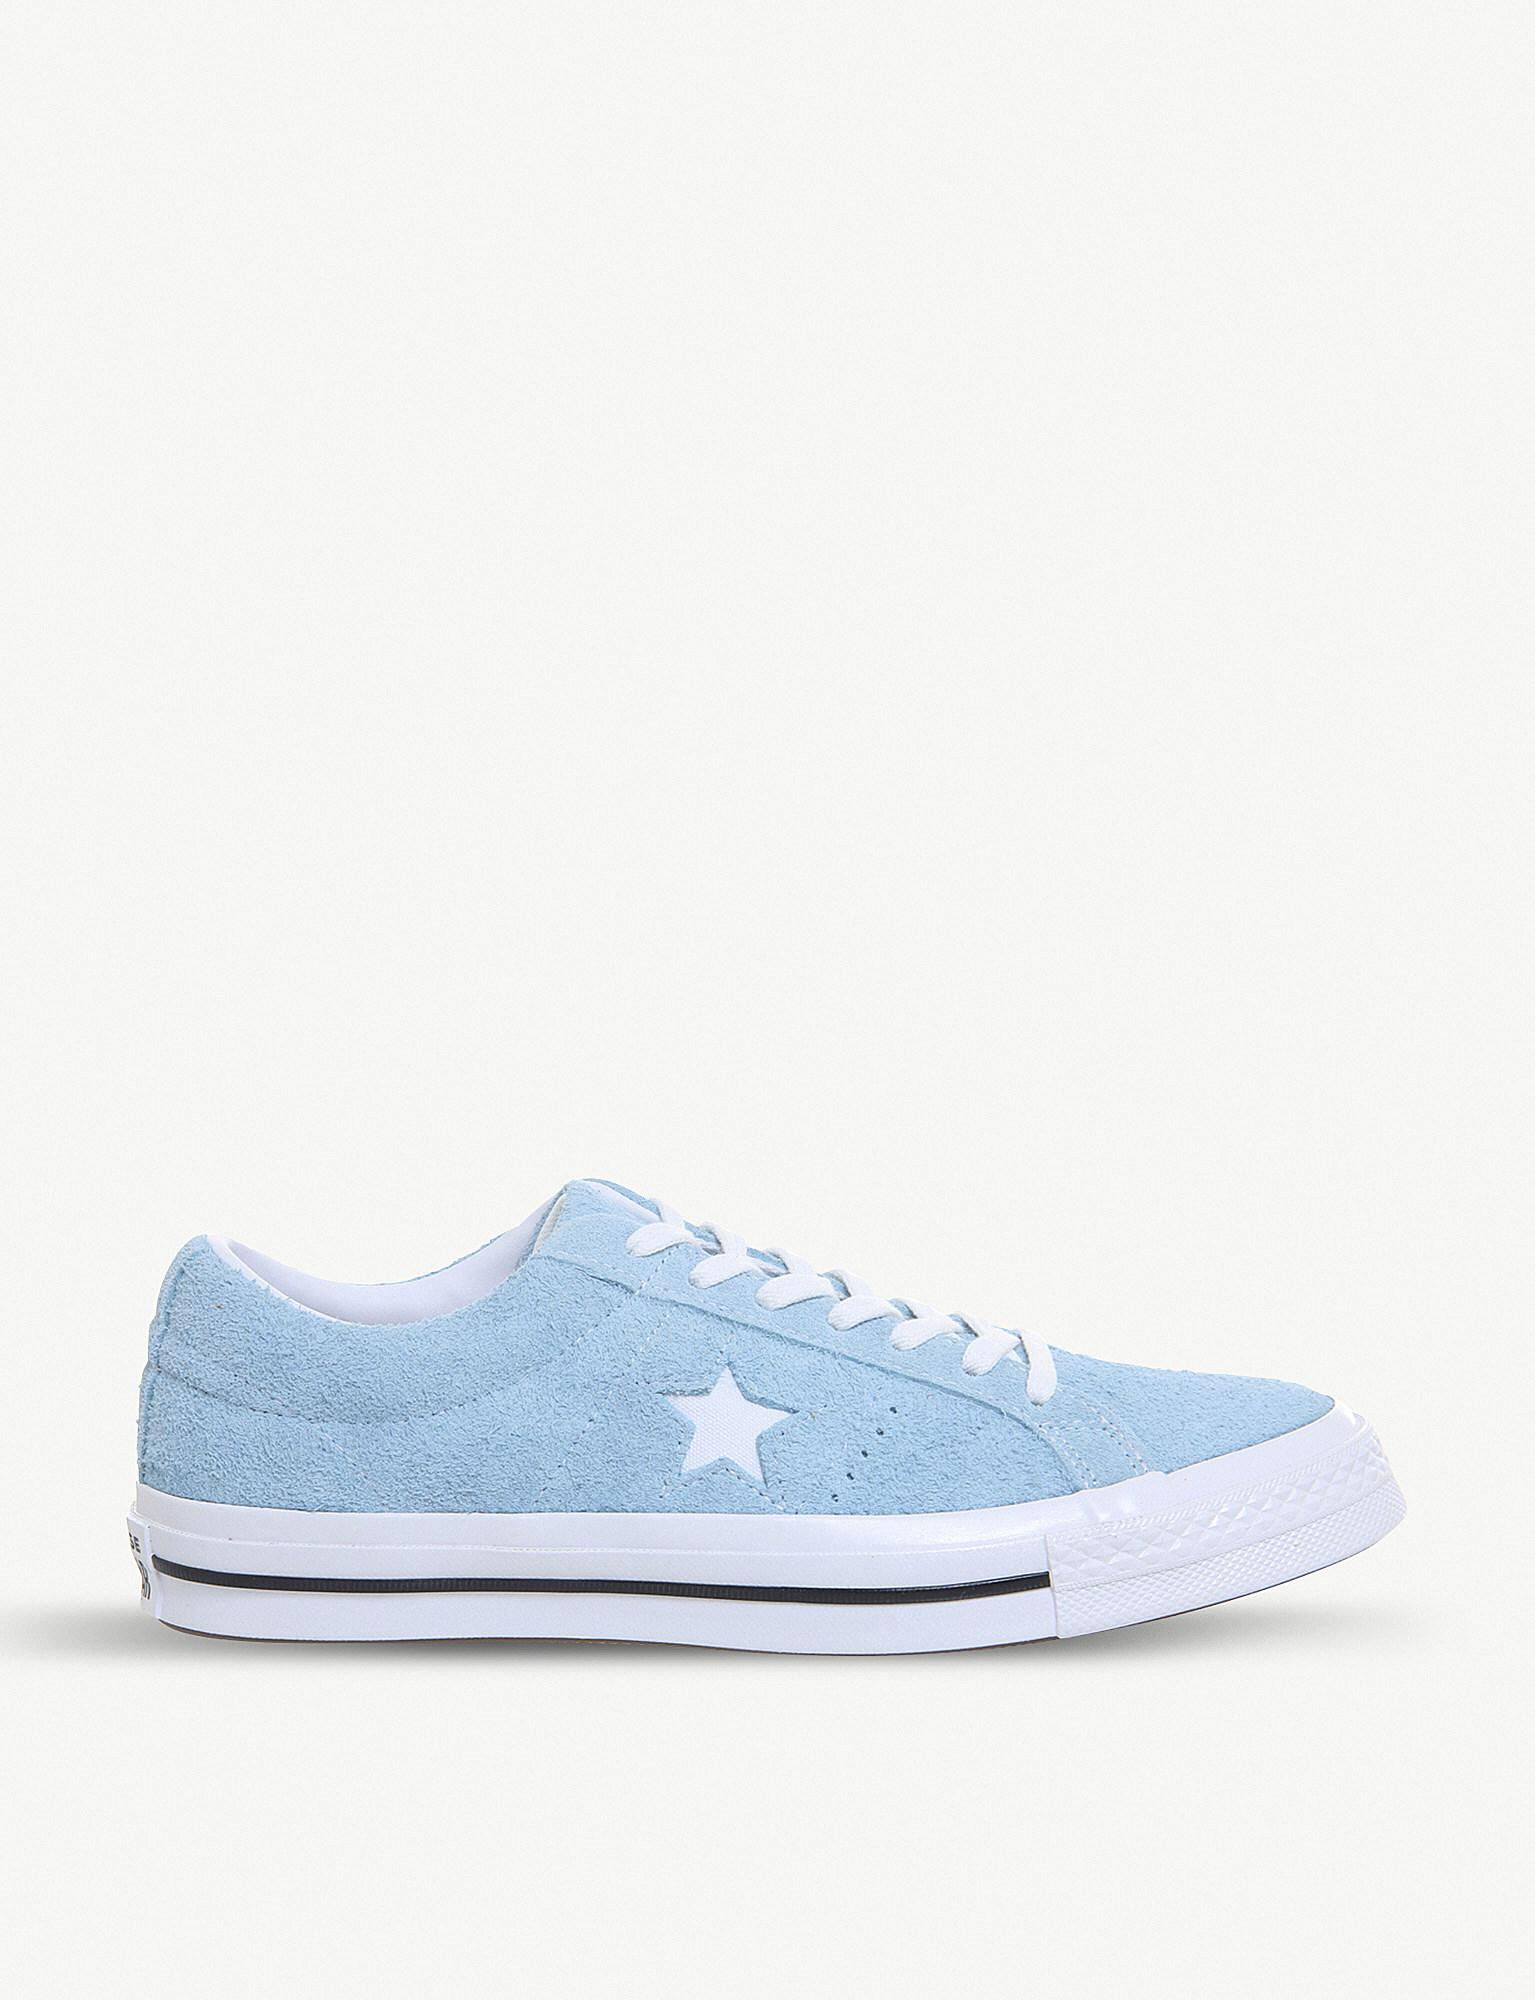 c145d8bd726 Lyst - Converse One Star Suede Trainers in Blue for Men